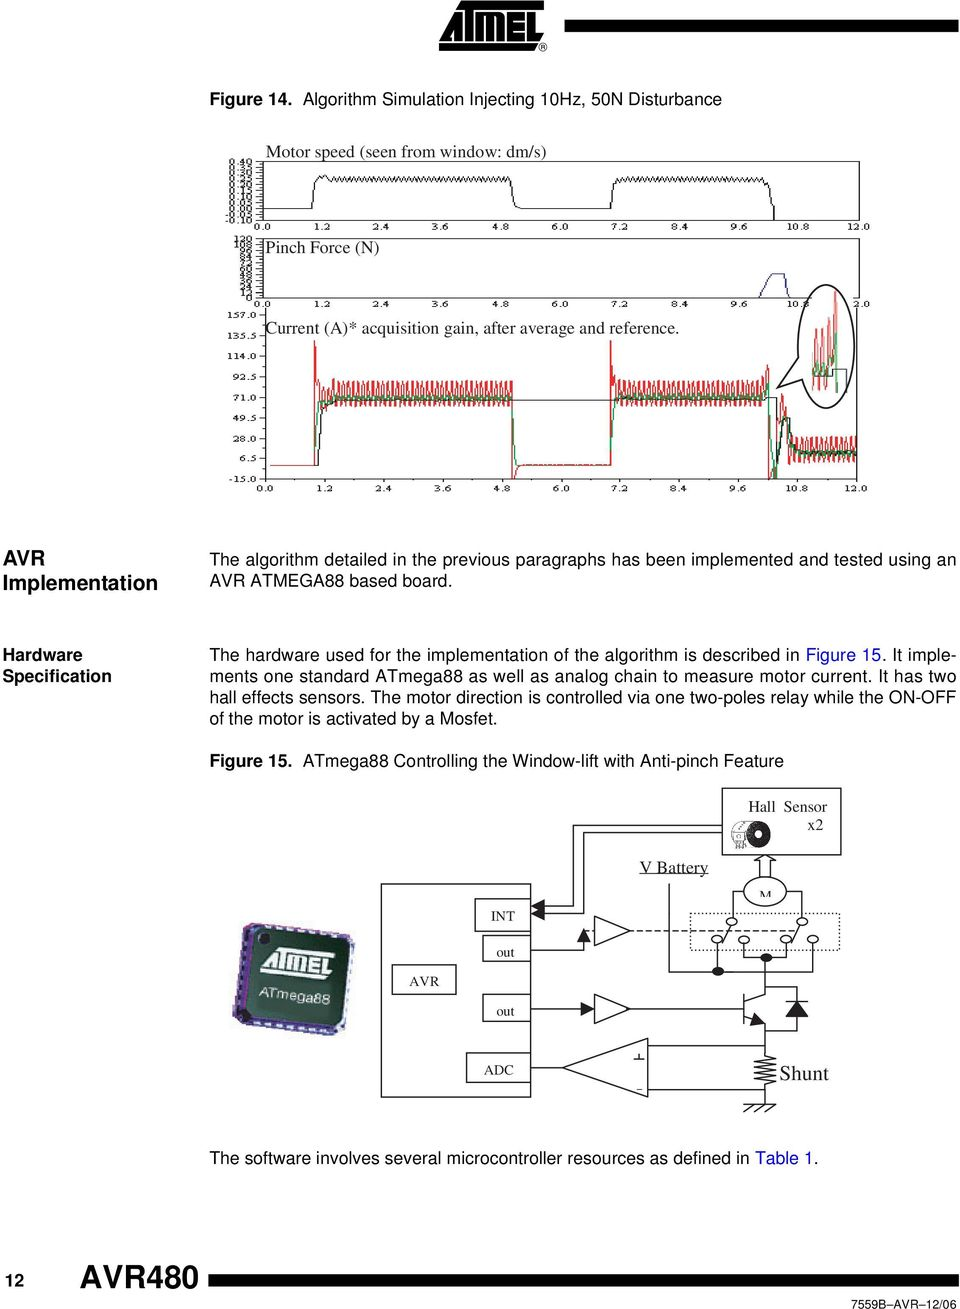 Application Note Microcontrollers Avr480 Anti Pinch System For Hall Effect Sensor Pic8051avr Usb Programmerdevelopment Boards Hardware Specification The Used Implementation Of Algorithm Is Described In Figure 15